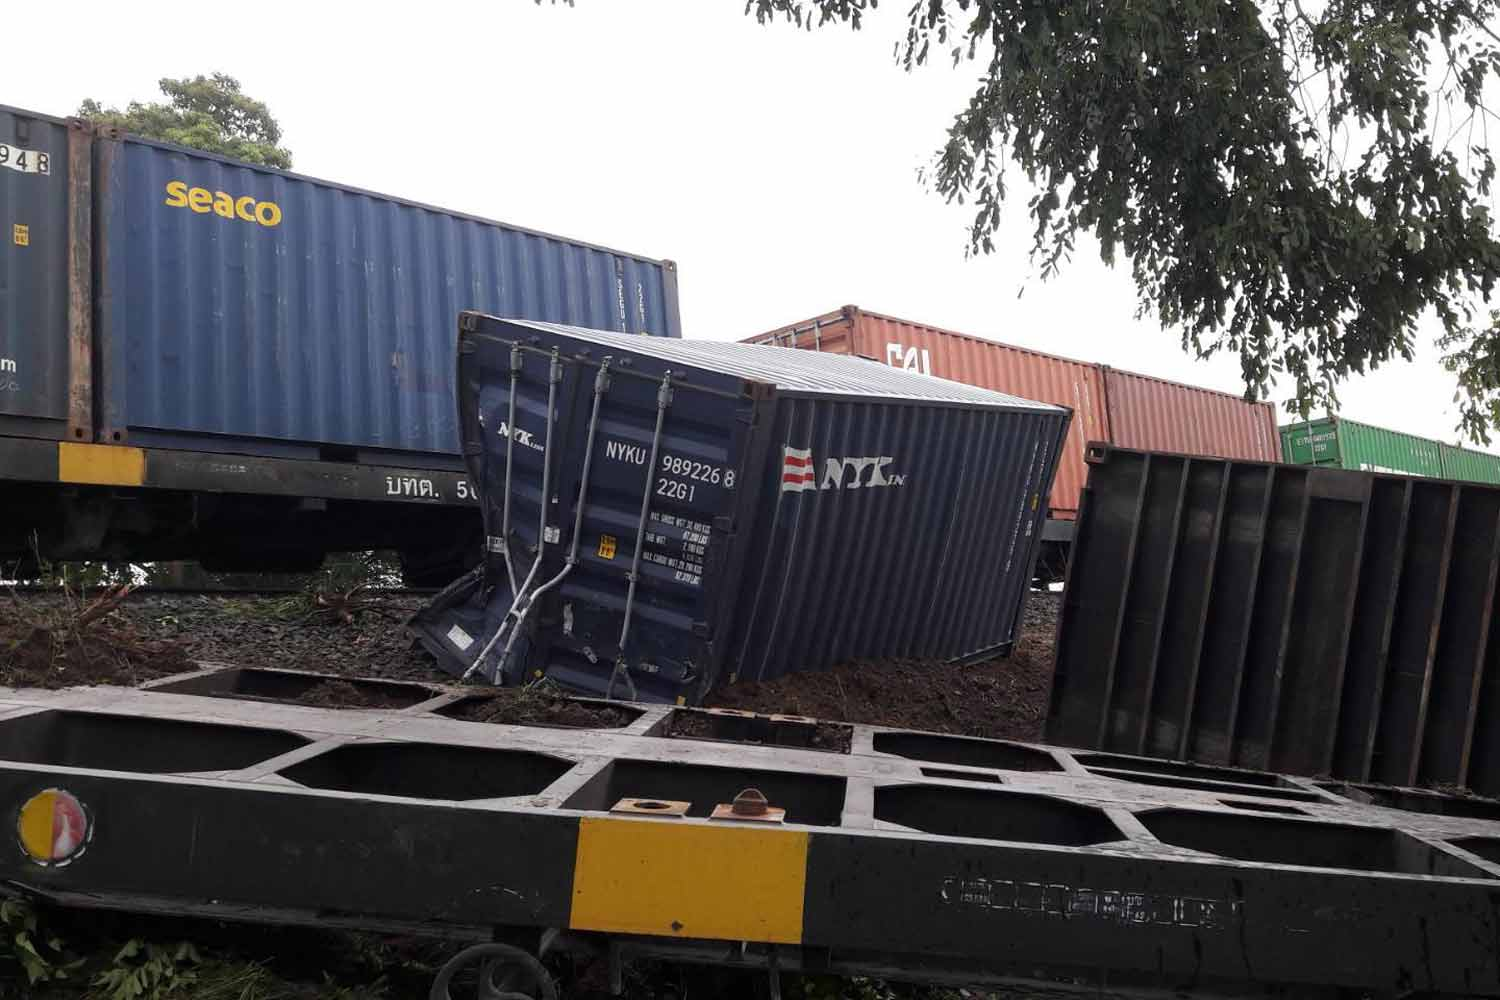 The scene of the freight train derailment in Lop Buri province on Thursday morning. (Photo: State Railway of Thailand)